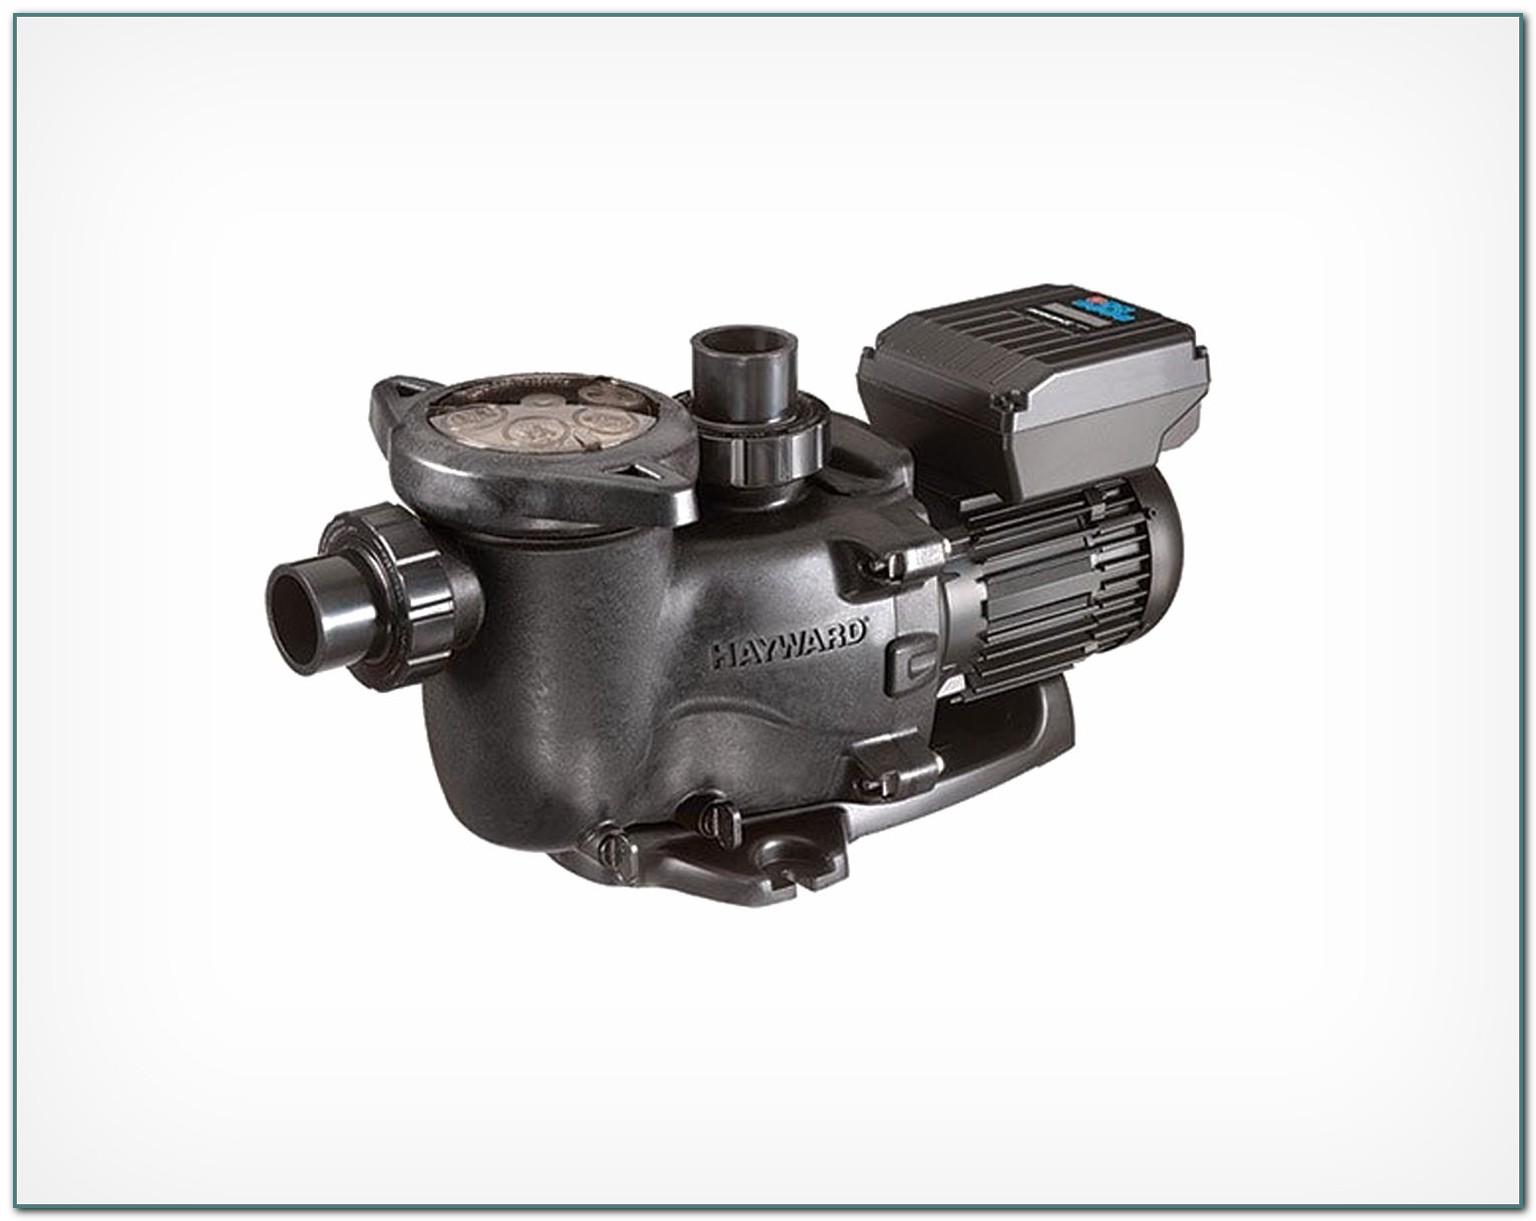 Best Hayward Variable Speed Pool Pump